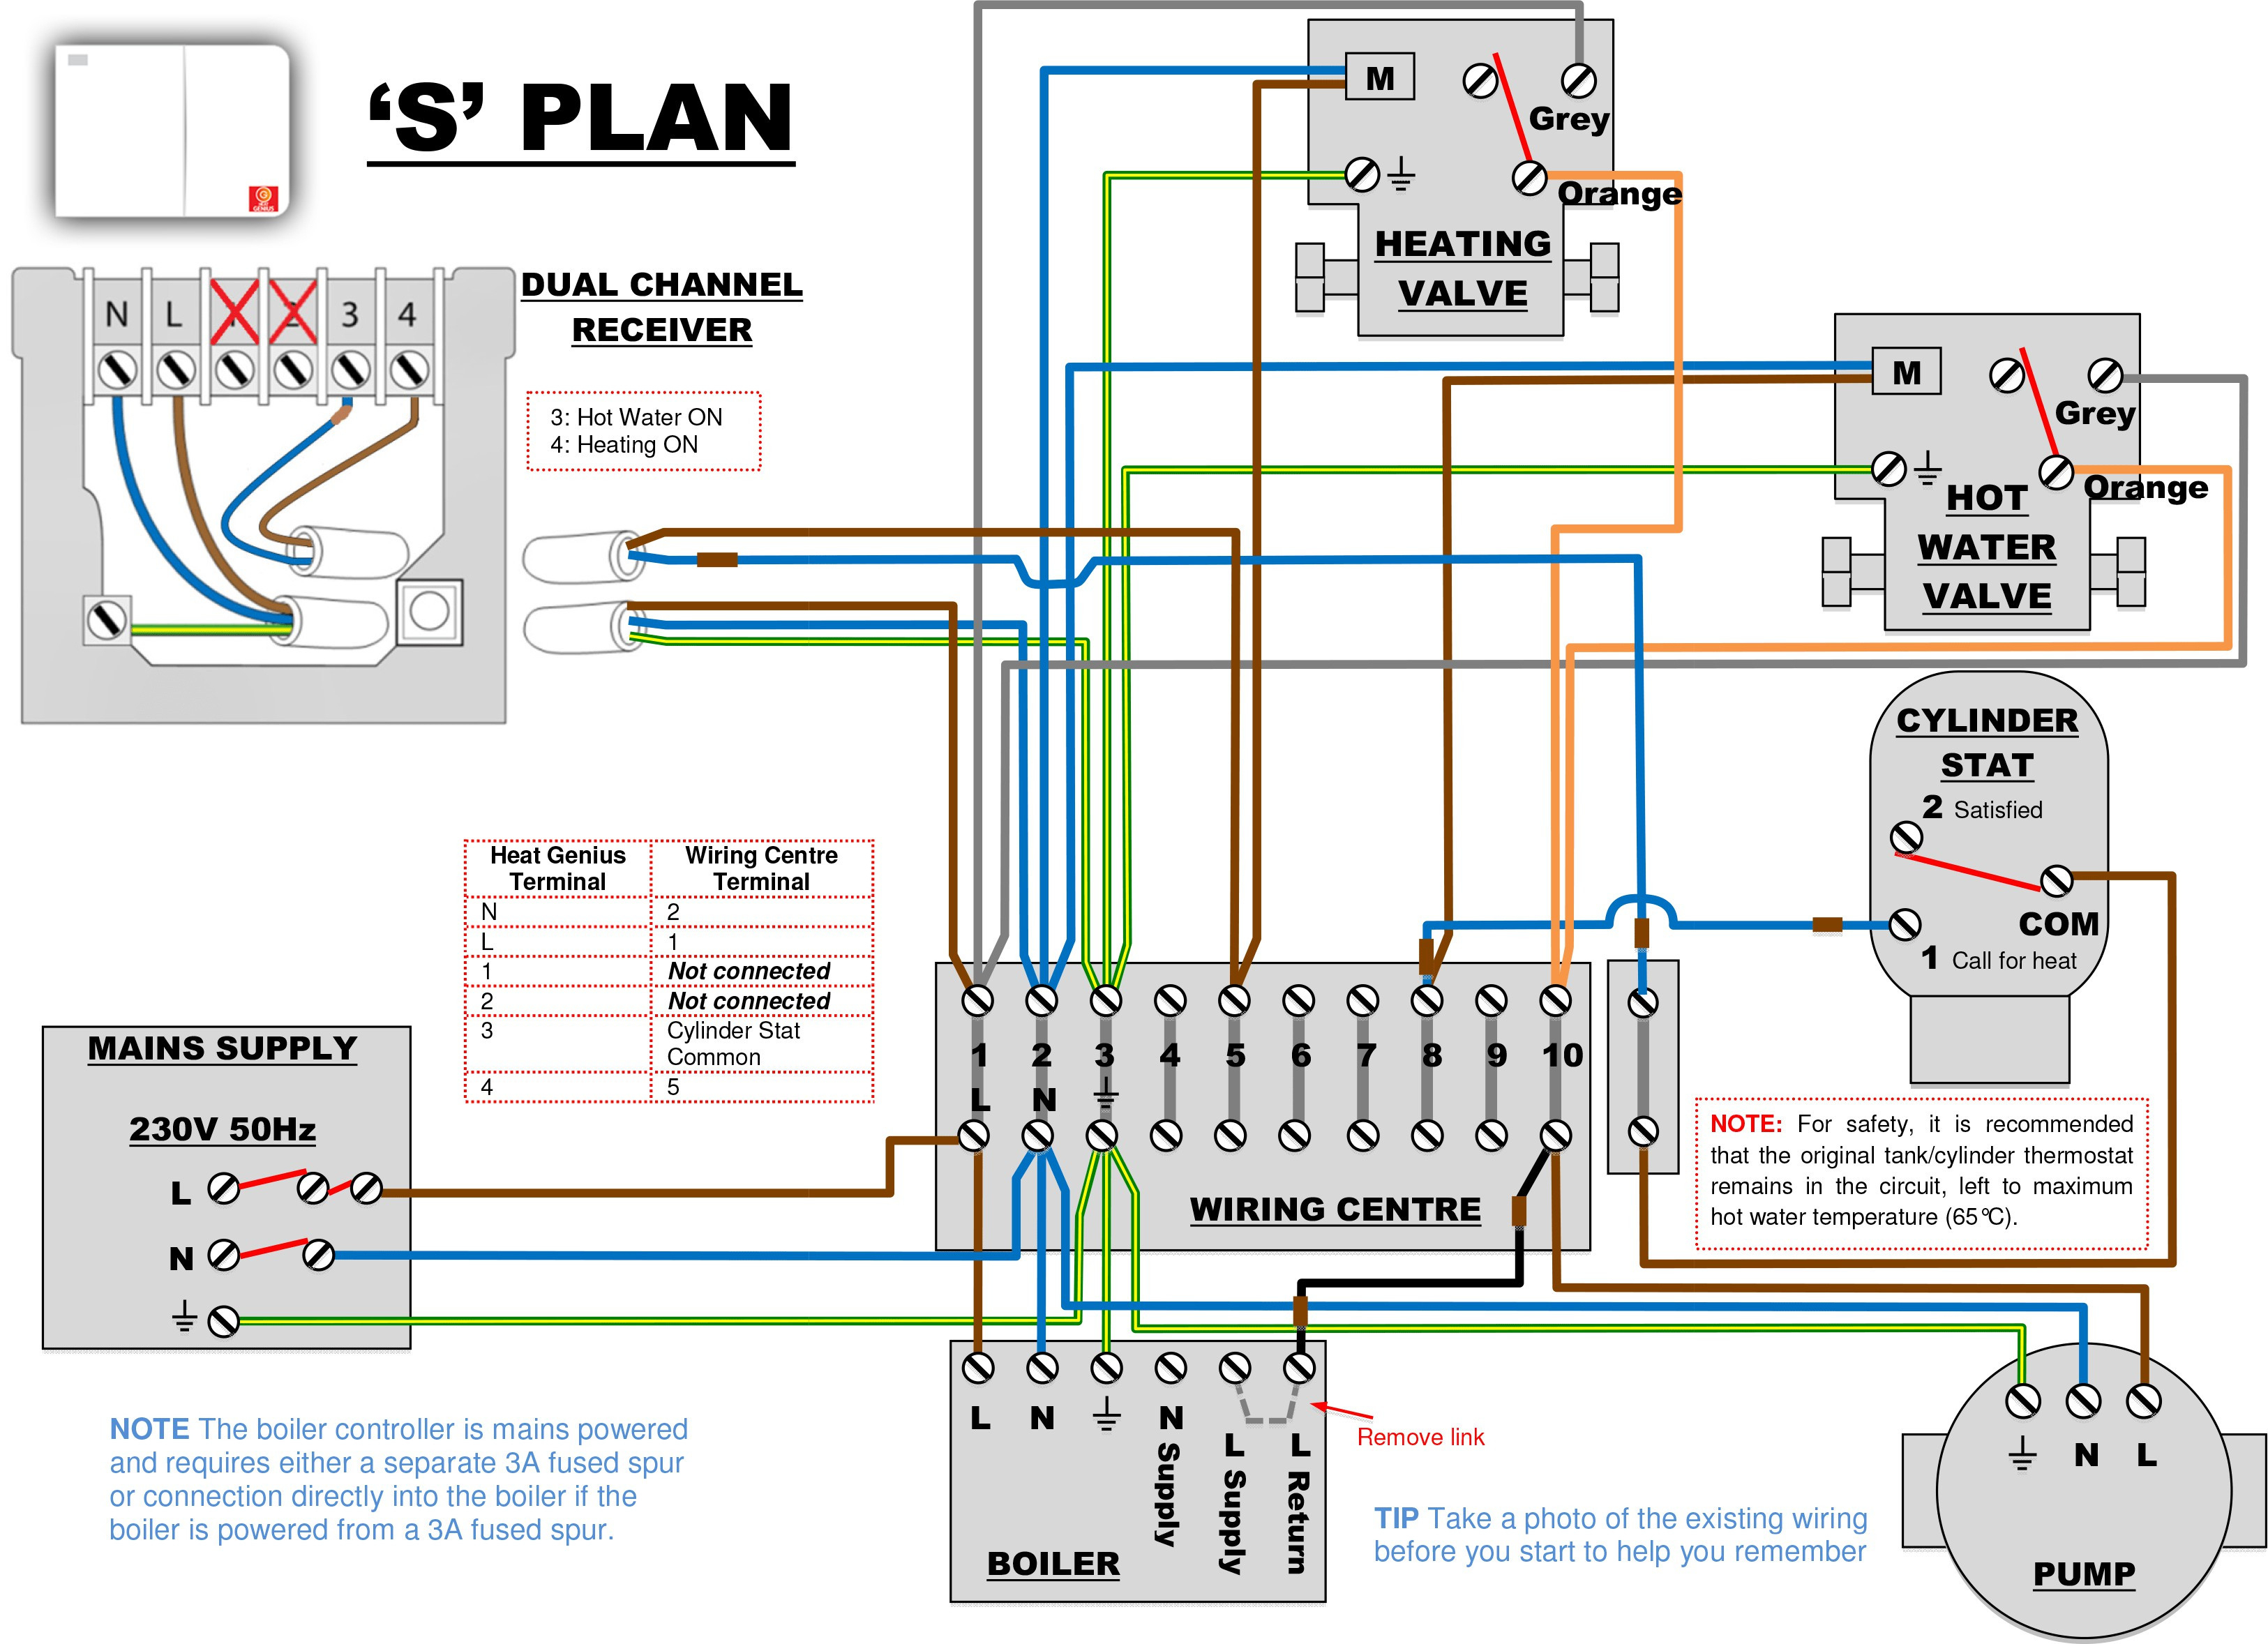 Wiring Diagrams For Nest Thermostat | Manual E-Books - Nest Thermostat Wiring Diagram S Plan